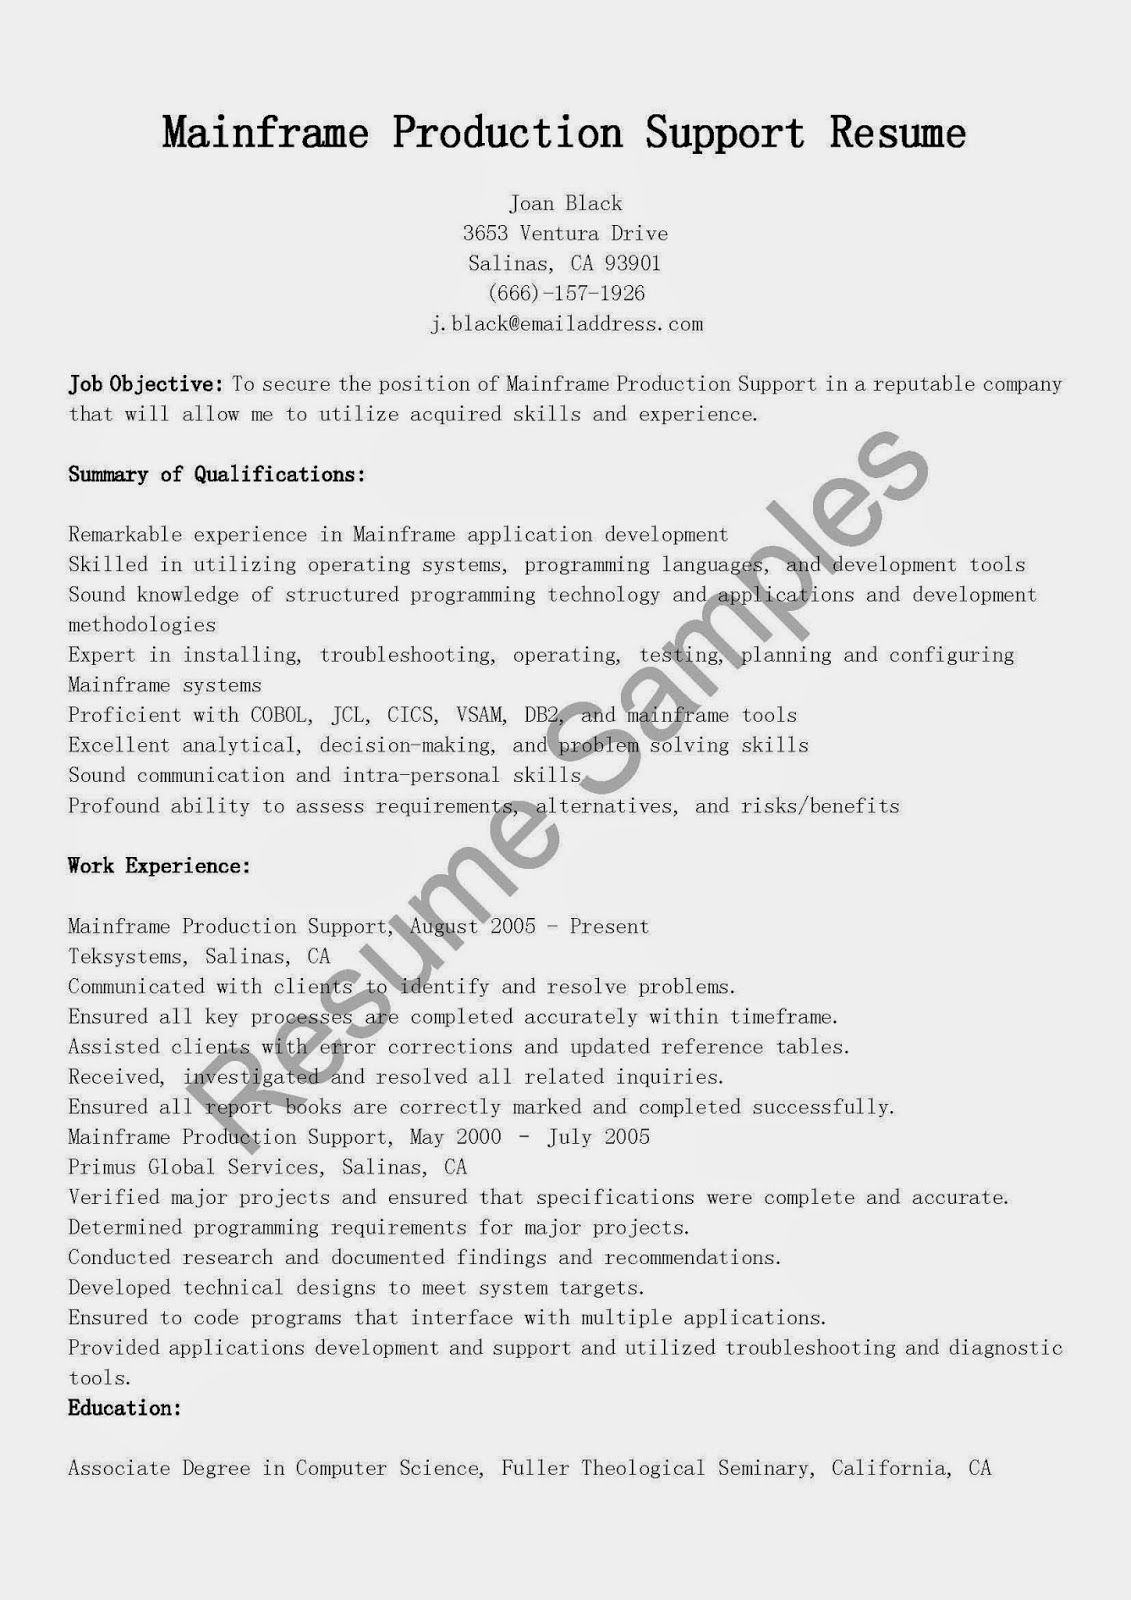 Mainframe production support resume sample resume for Sample resume for 2 years experience in mainframe